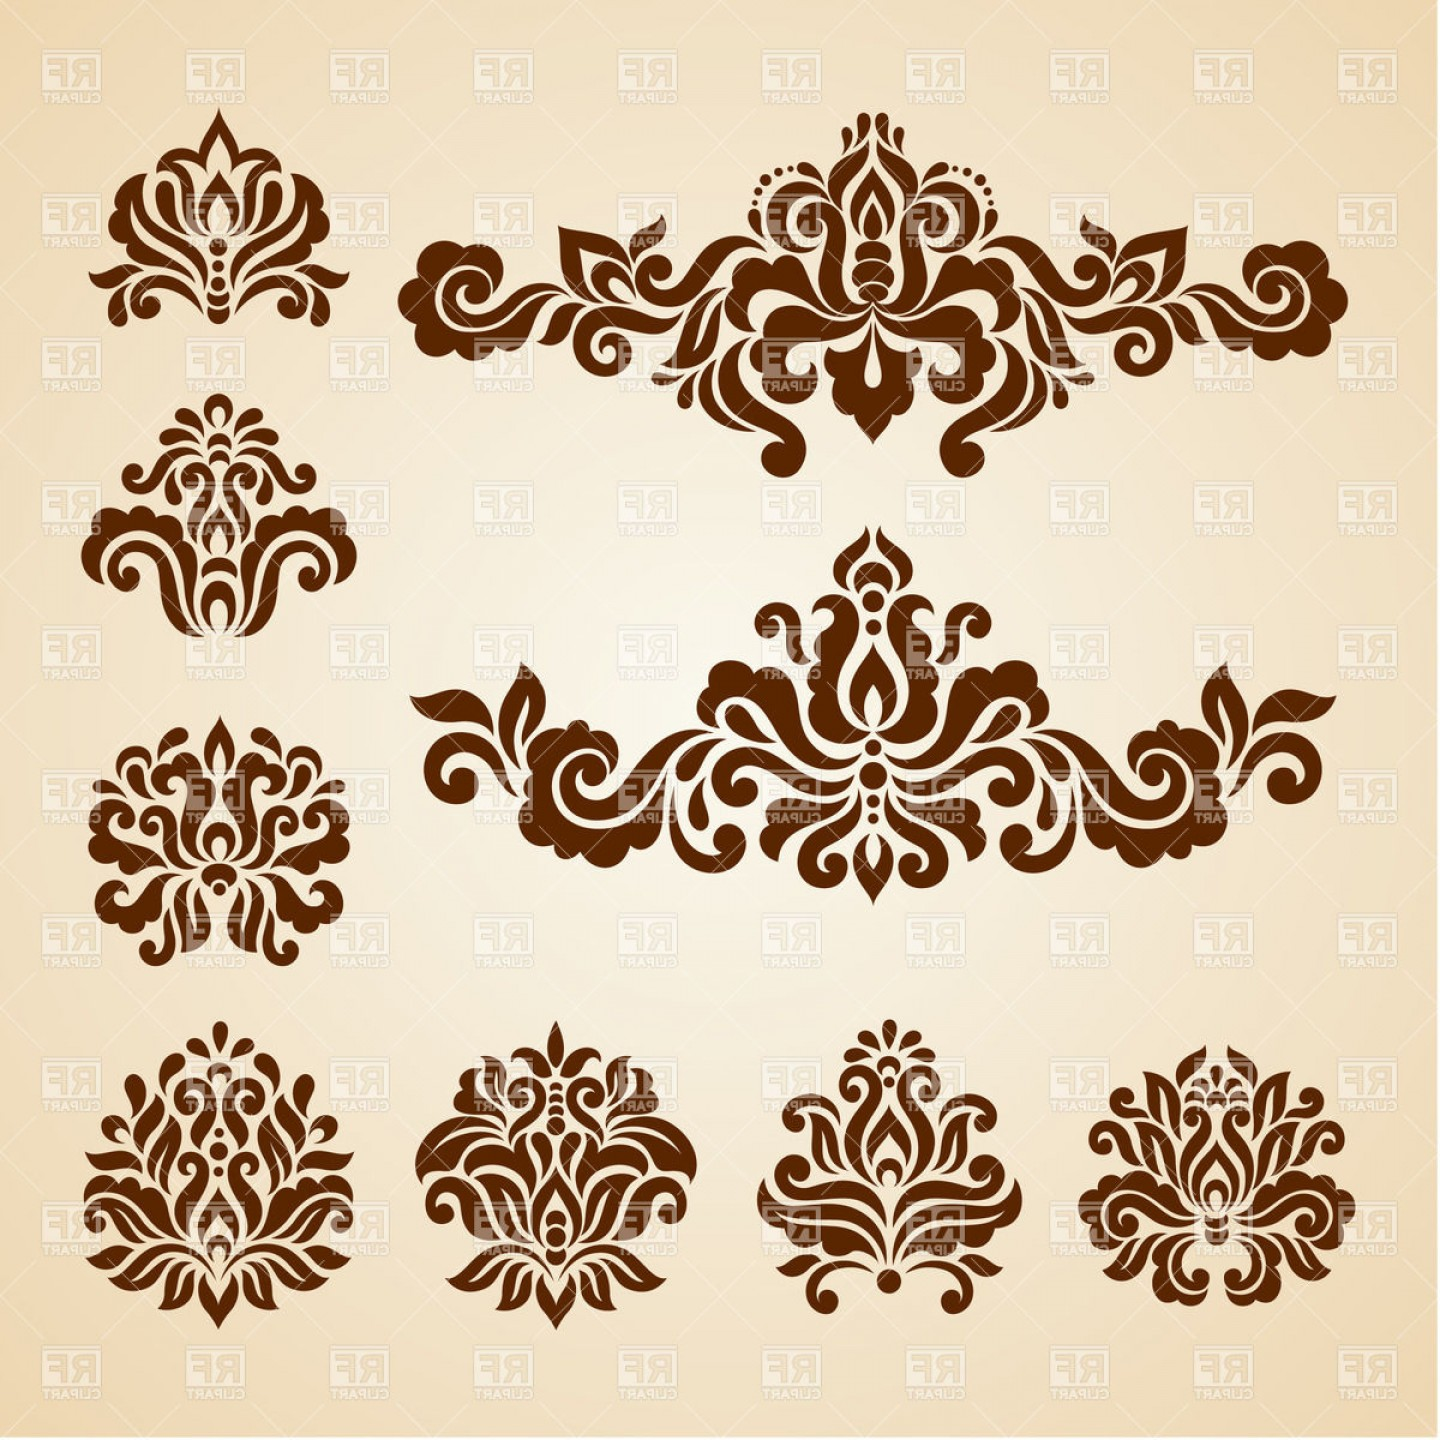 Ornate Vintage Vignettes And Dividers Antique Decorative Design.